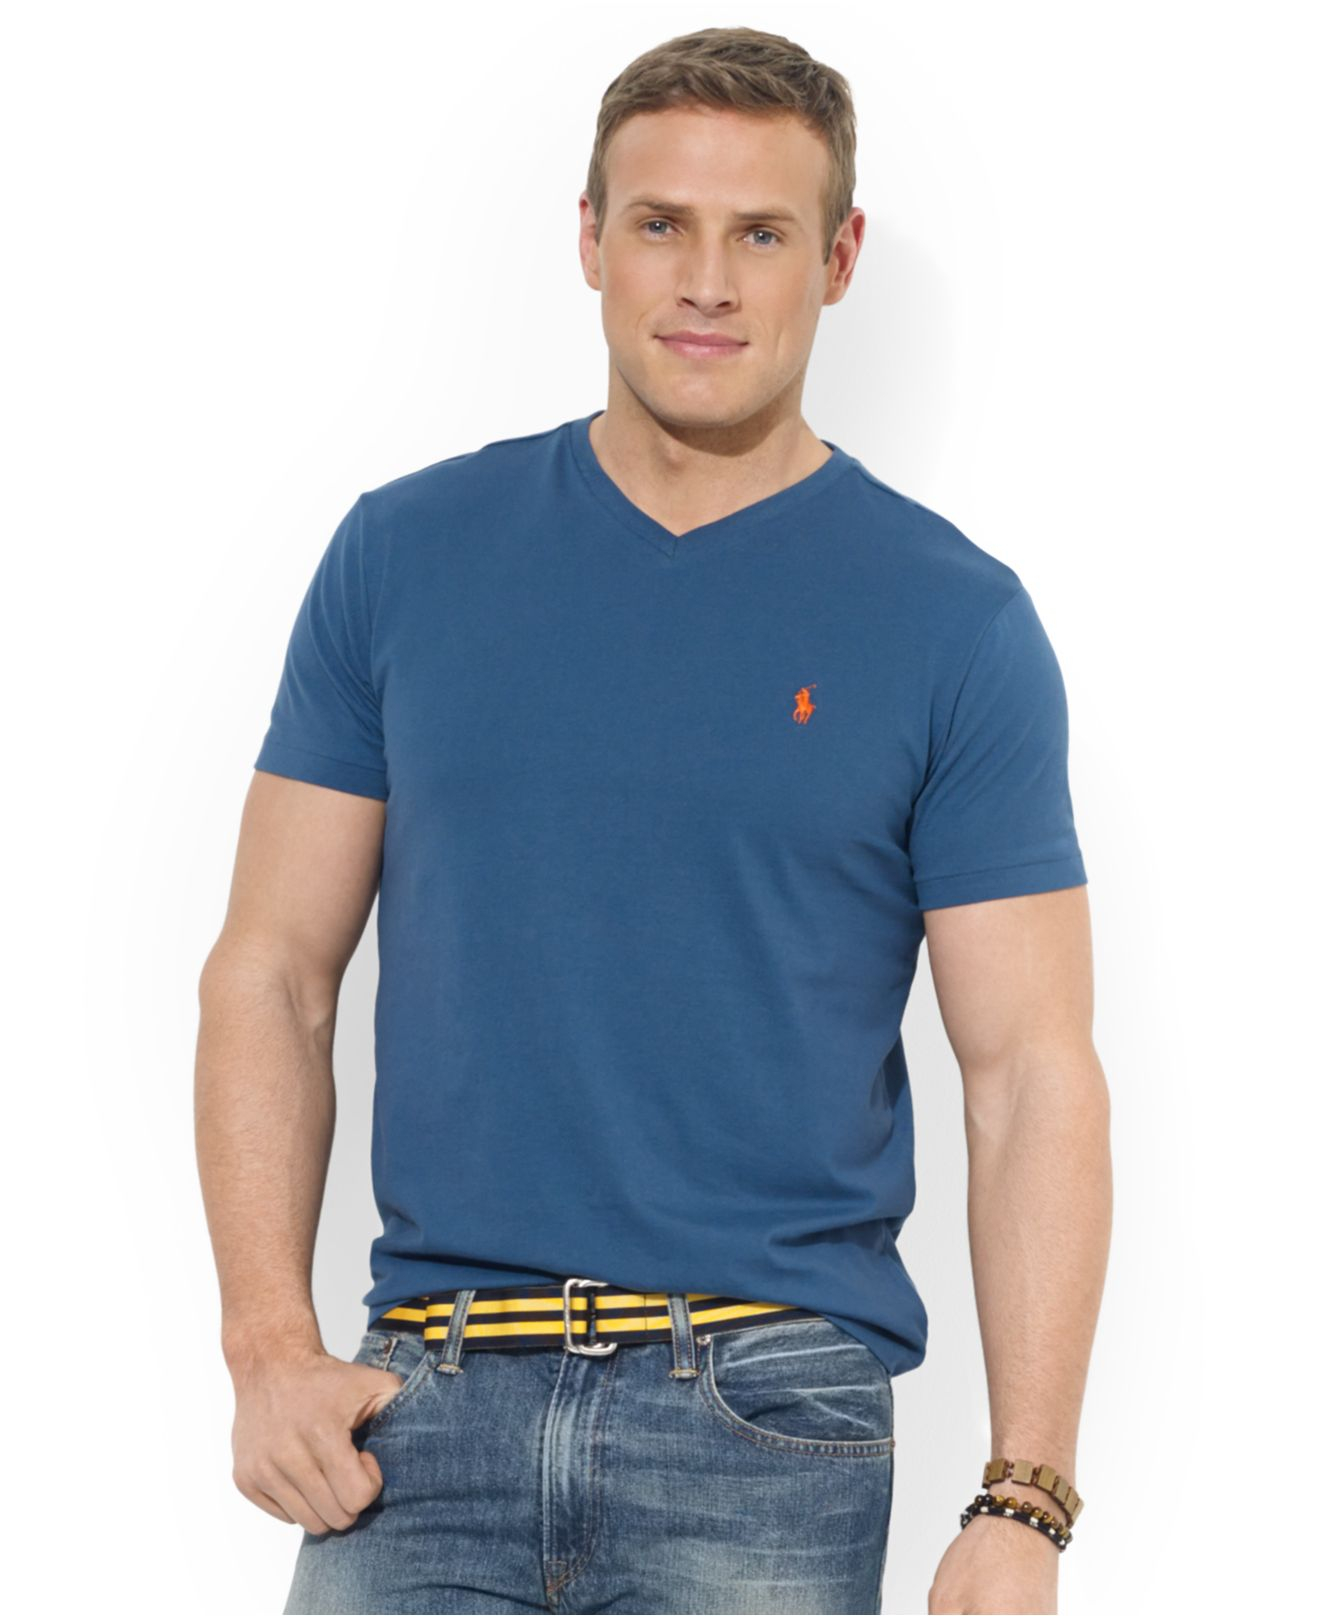 23abf834fbaa Lyst - Polo Ralph Lauren Big And Tall Classic-fit V-neck Short ...